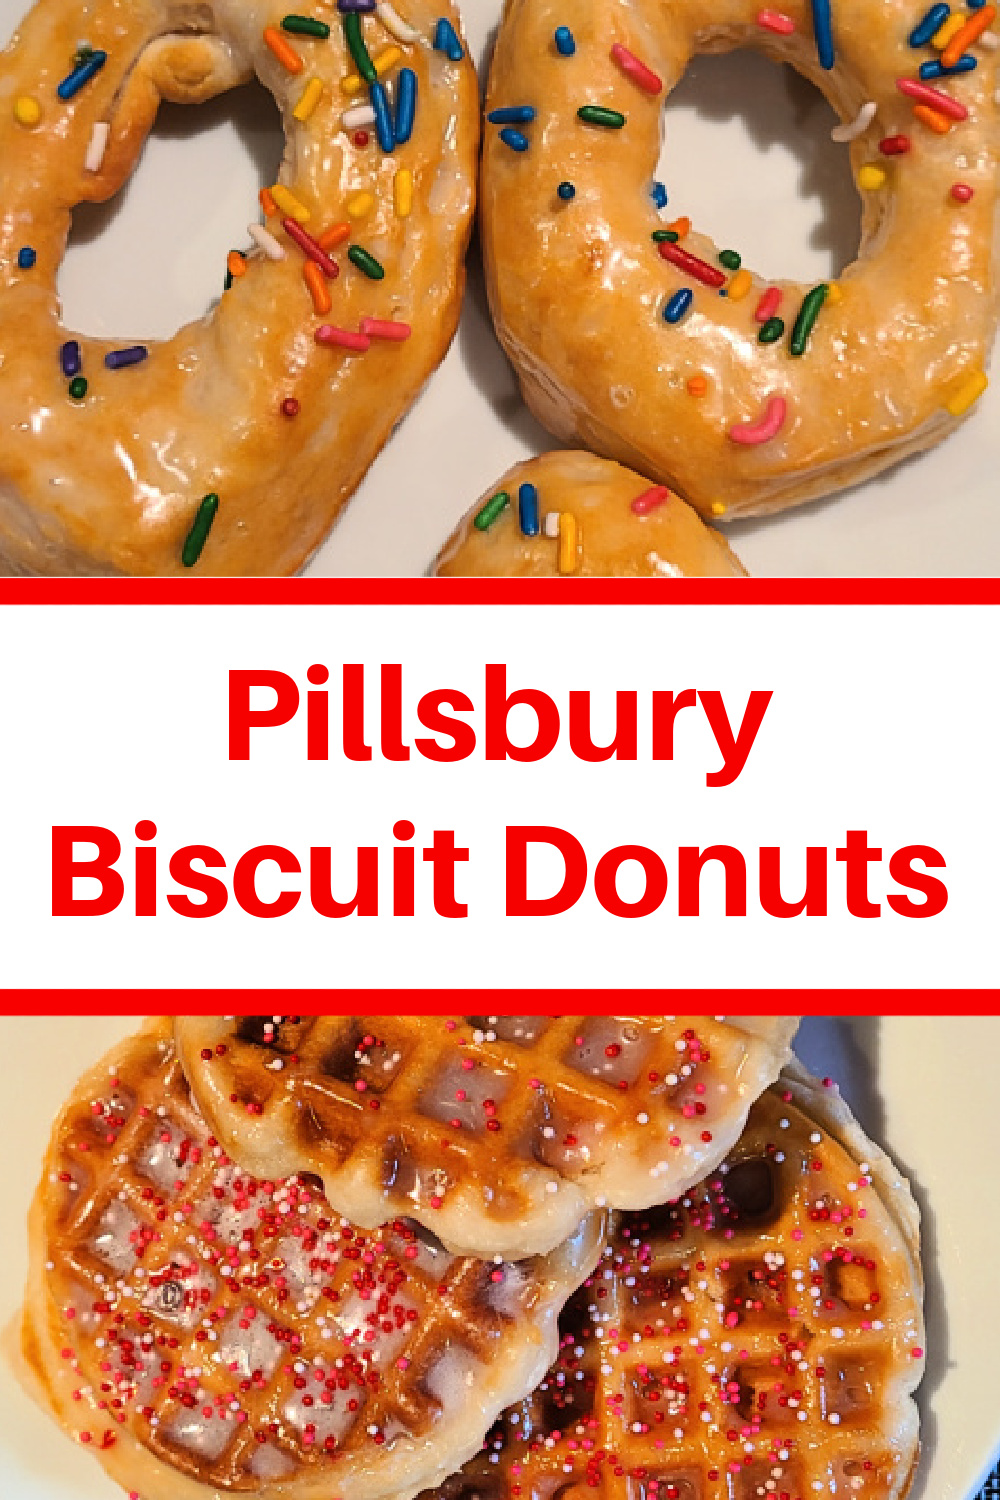 Making Pillsbury Biscuit Donuts are easy! They can be made on the stovetop, in the air fryer, or in a waffle maker with homemade icing too! These are easy to make plus they are a budget-friendly treat the kids can help to make as well.